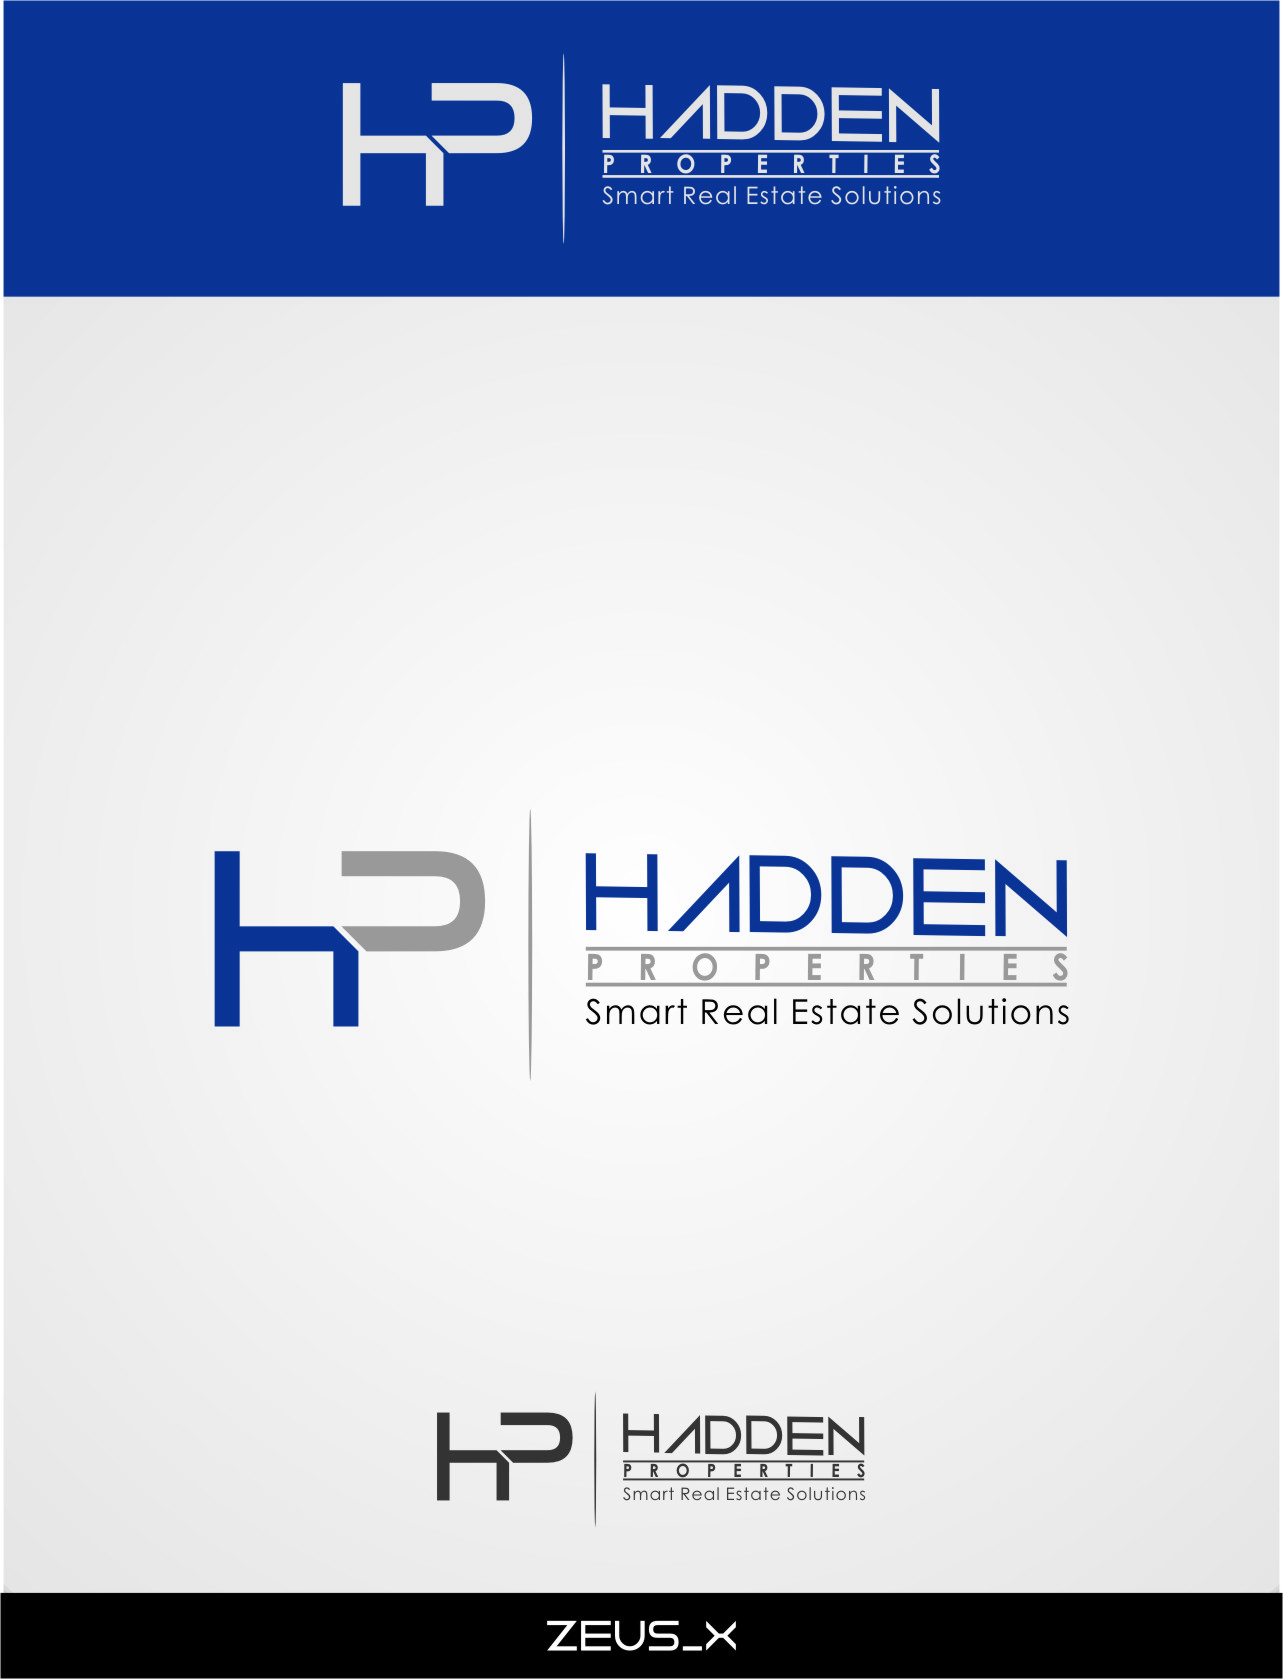 Logo Design by Ngepet_art - Entry No. 86 in the Logo Design Contest Artistic Logo Design for Hadden Properties.